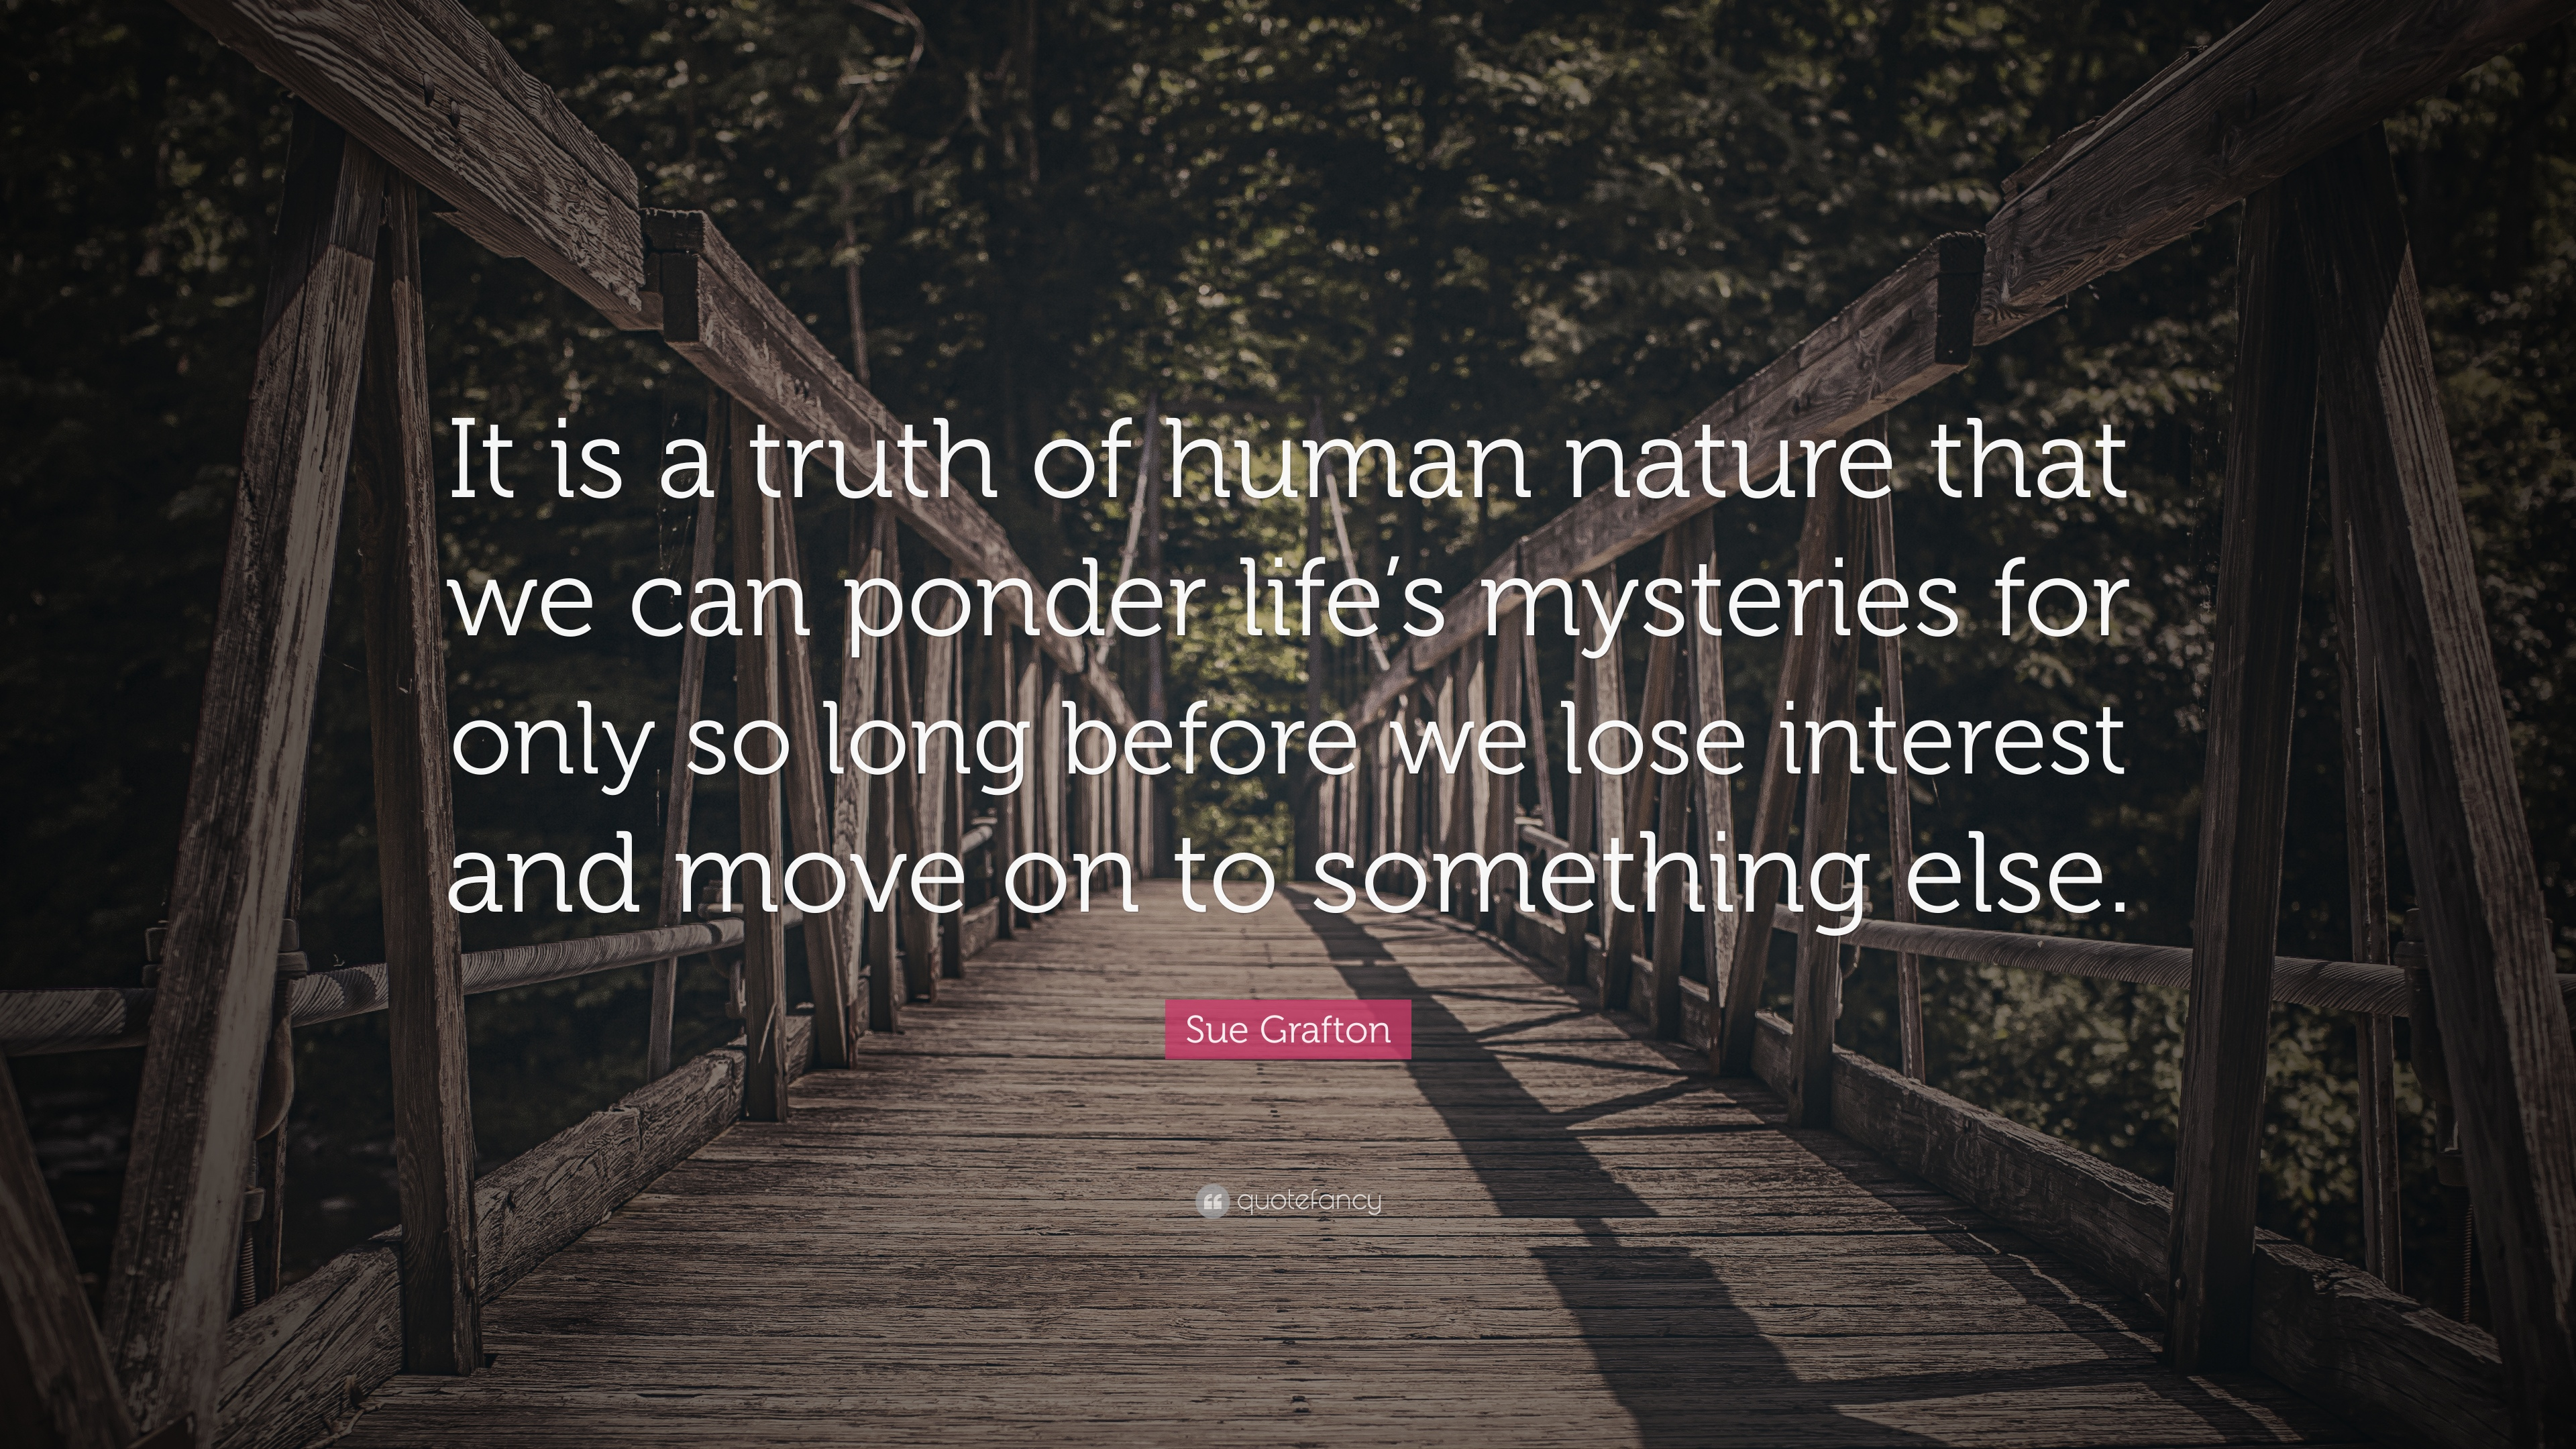 Sue Grafton Quote It Is A Truth Of Human Nature That We Can Ponder